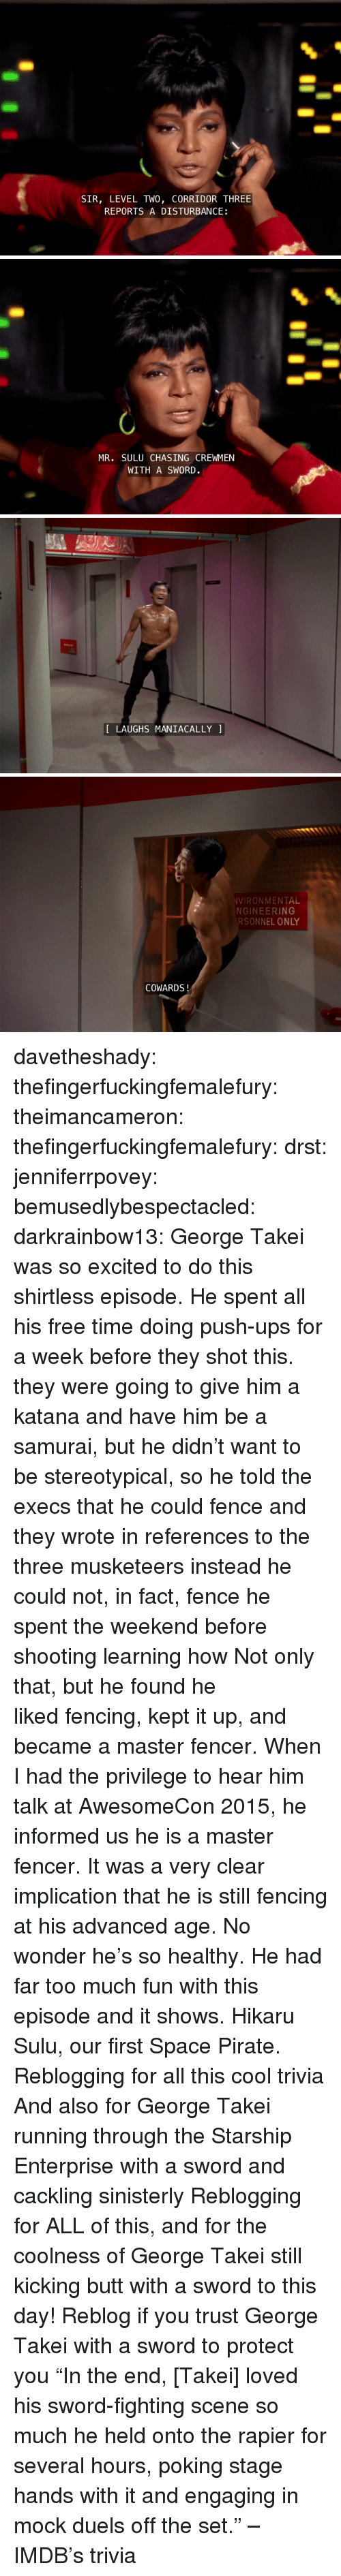 """katana: SIR, LEVEL TWO, CORRIDOR THREE  REPORTS A DISTURBANCE   MR. SULU CHASING CREWMEN  WITH A SWORD.   LAUGHS MANIACALLY   VIRONMENTAL  NGINEERING  RSONNEL ONLY  COWARDS! davetheshady:  thefingerfuckingfemalefury:  theimancameron:  thefingerfuckingfemalefury:  drst:  jenniferrpovey:  bemusedlybespectacled:  darkrainbow13:  George Takei was so excited to do this shirtless episode. He spent all his free time doing push-ups for a week before they shot this.  they were going to give him a katana and have him be a samurai, but he didn't want to be stereotypical, so he told the execs that he could fence and they wrote in references to the three musketeers instead he could not, in fact, fence he spent the weekend before shooting learning how  Not only that, but he found he likedfencing, kept it up, and became a master fencer. When I had the privilege to hear him talk at AwesomeCon 2015, he informed us he isa master fencer. It was a very clear implication that he is stillfencing at his advanced age. No wonder he's so healthy. He had fartoo much fun with this episode and it shows.  Hikaru Sulu, our first Space Pirate.   Reblogging for all this cool trivia And also for George Takei running through the Starship Enterprise with a sword and cackling sinisterly   Reblogging for ALL of this, and for the coolness of George Takei still kicking butt with a sword to this day!  Reblog if you trust George Takei with a sword to protect you  """"In the end, [Takei] loved his sword-fighting scene so much he held onto the rapier for several hours, poking stage hands with it and engaging in mock duels off the set."""" – IMDB's trivia"""